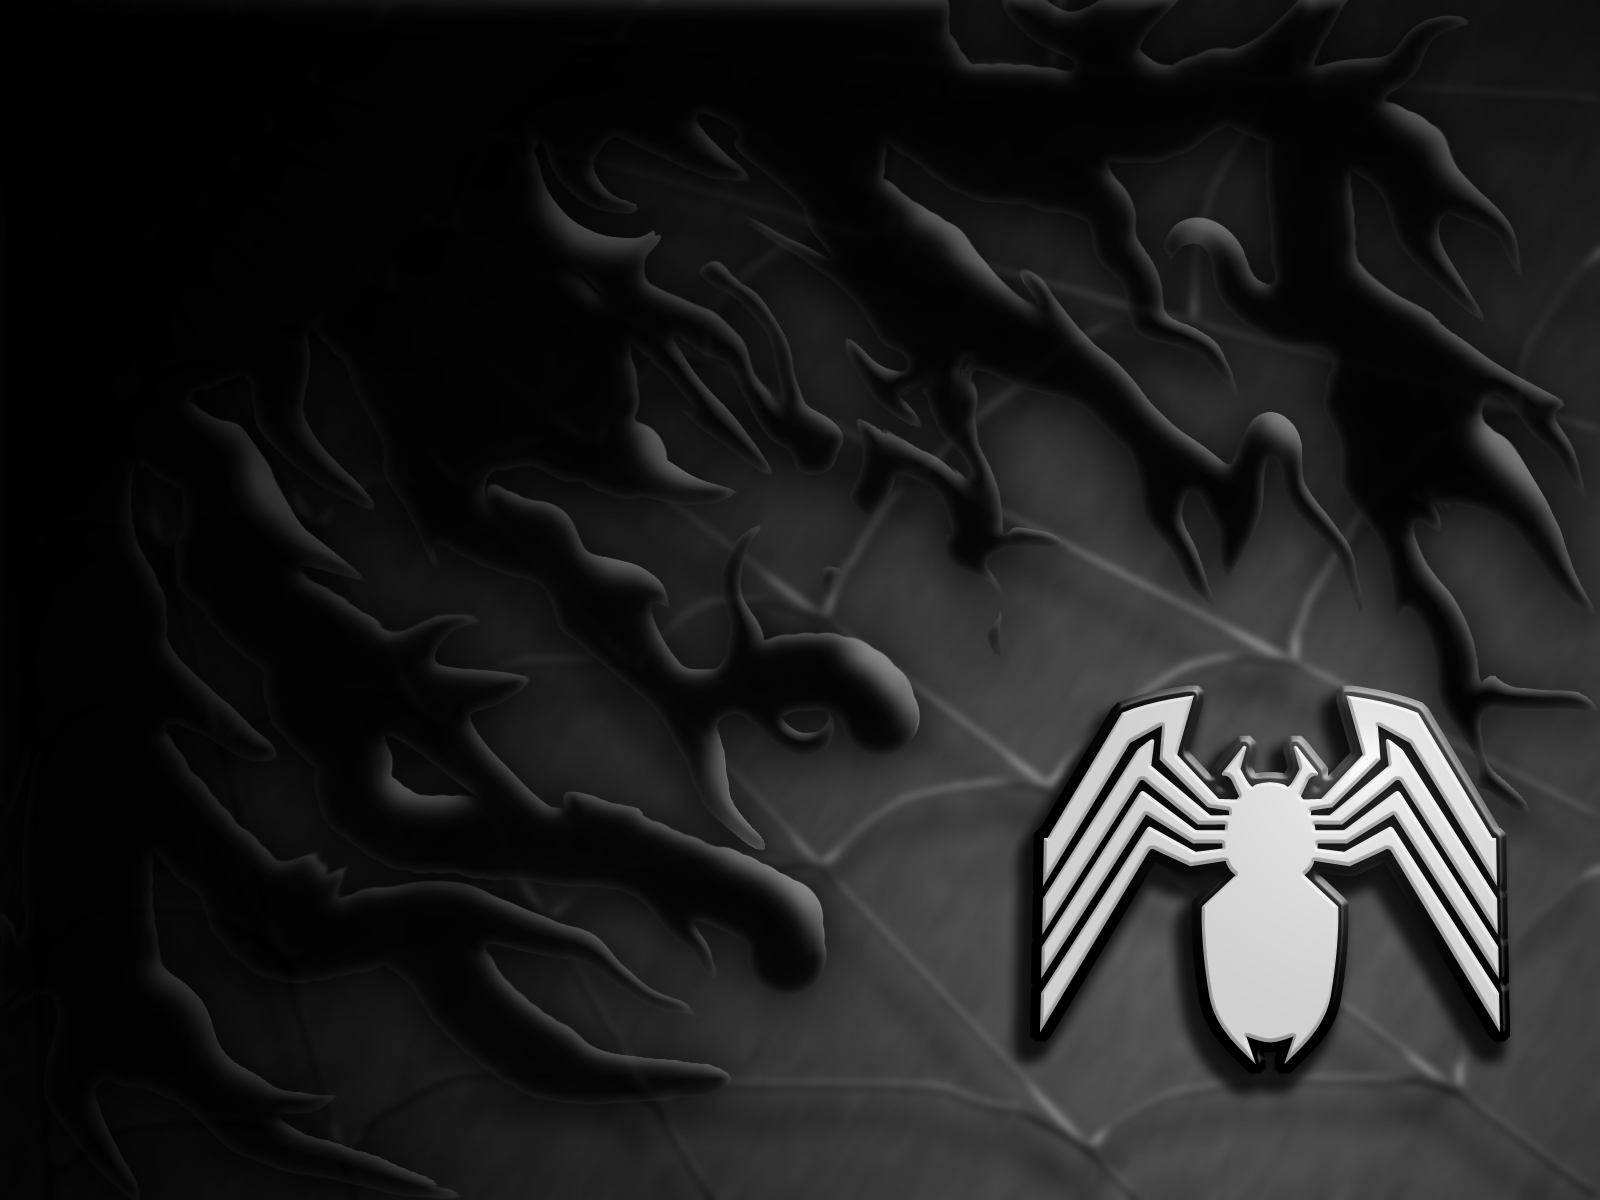 Amazing spiderman cute cartoon wallpaper - Black and white spiderman wallpaper ...